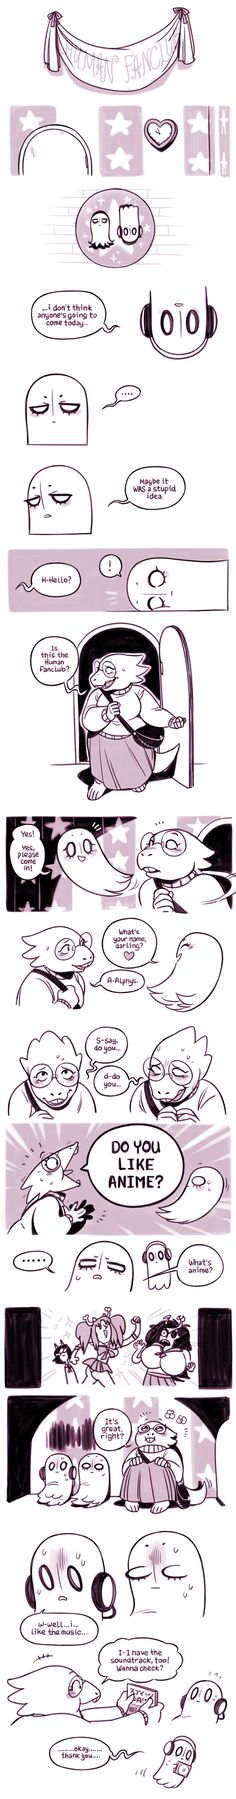 Undertale, Napstablook, Mettaton, and Alphys, part 3 Human Fan Club first meeting!